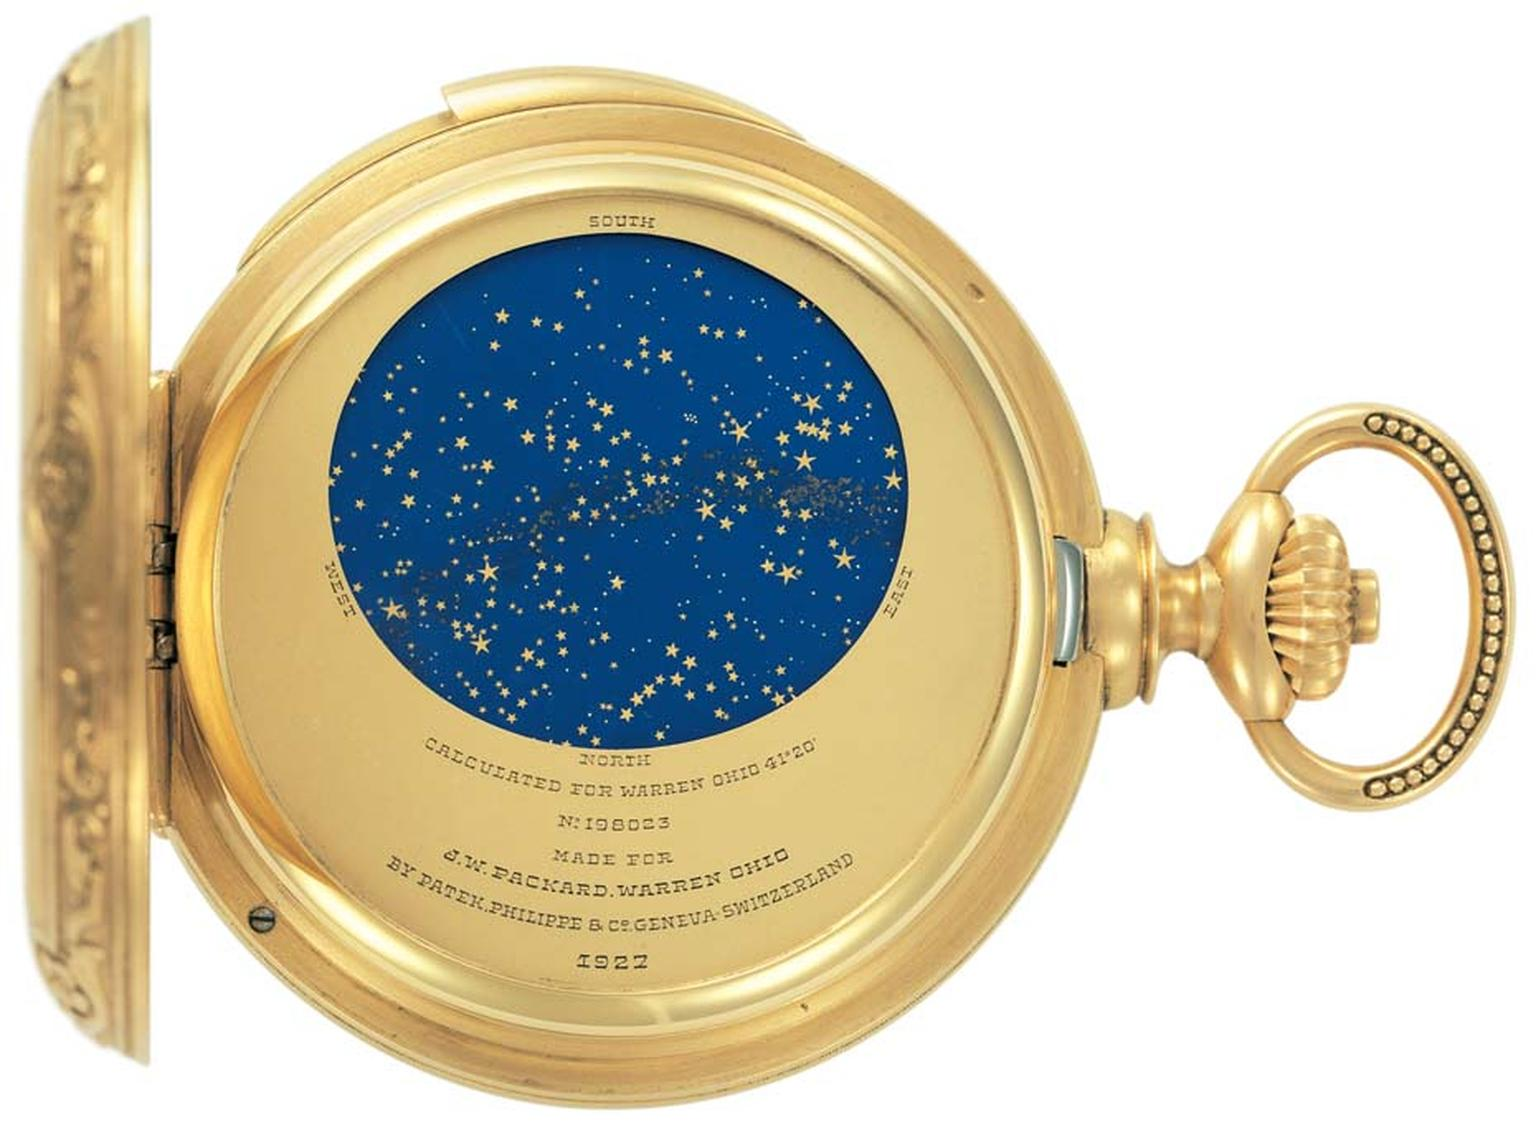 The Patek Philippe Grand Complication pocket watch made for James Ward Packard features a representation of the night sky over Packard's hometown of Warren, Ohio.